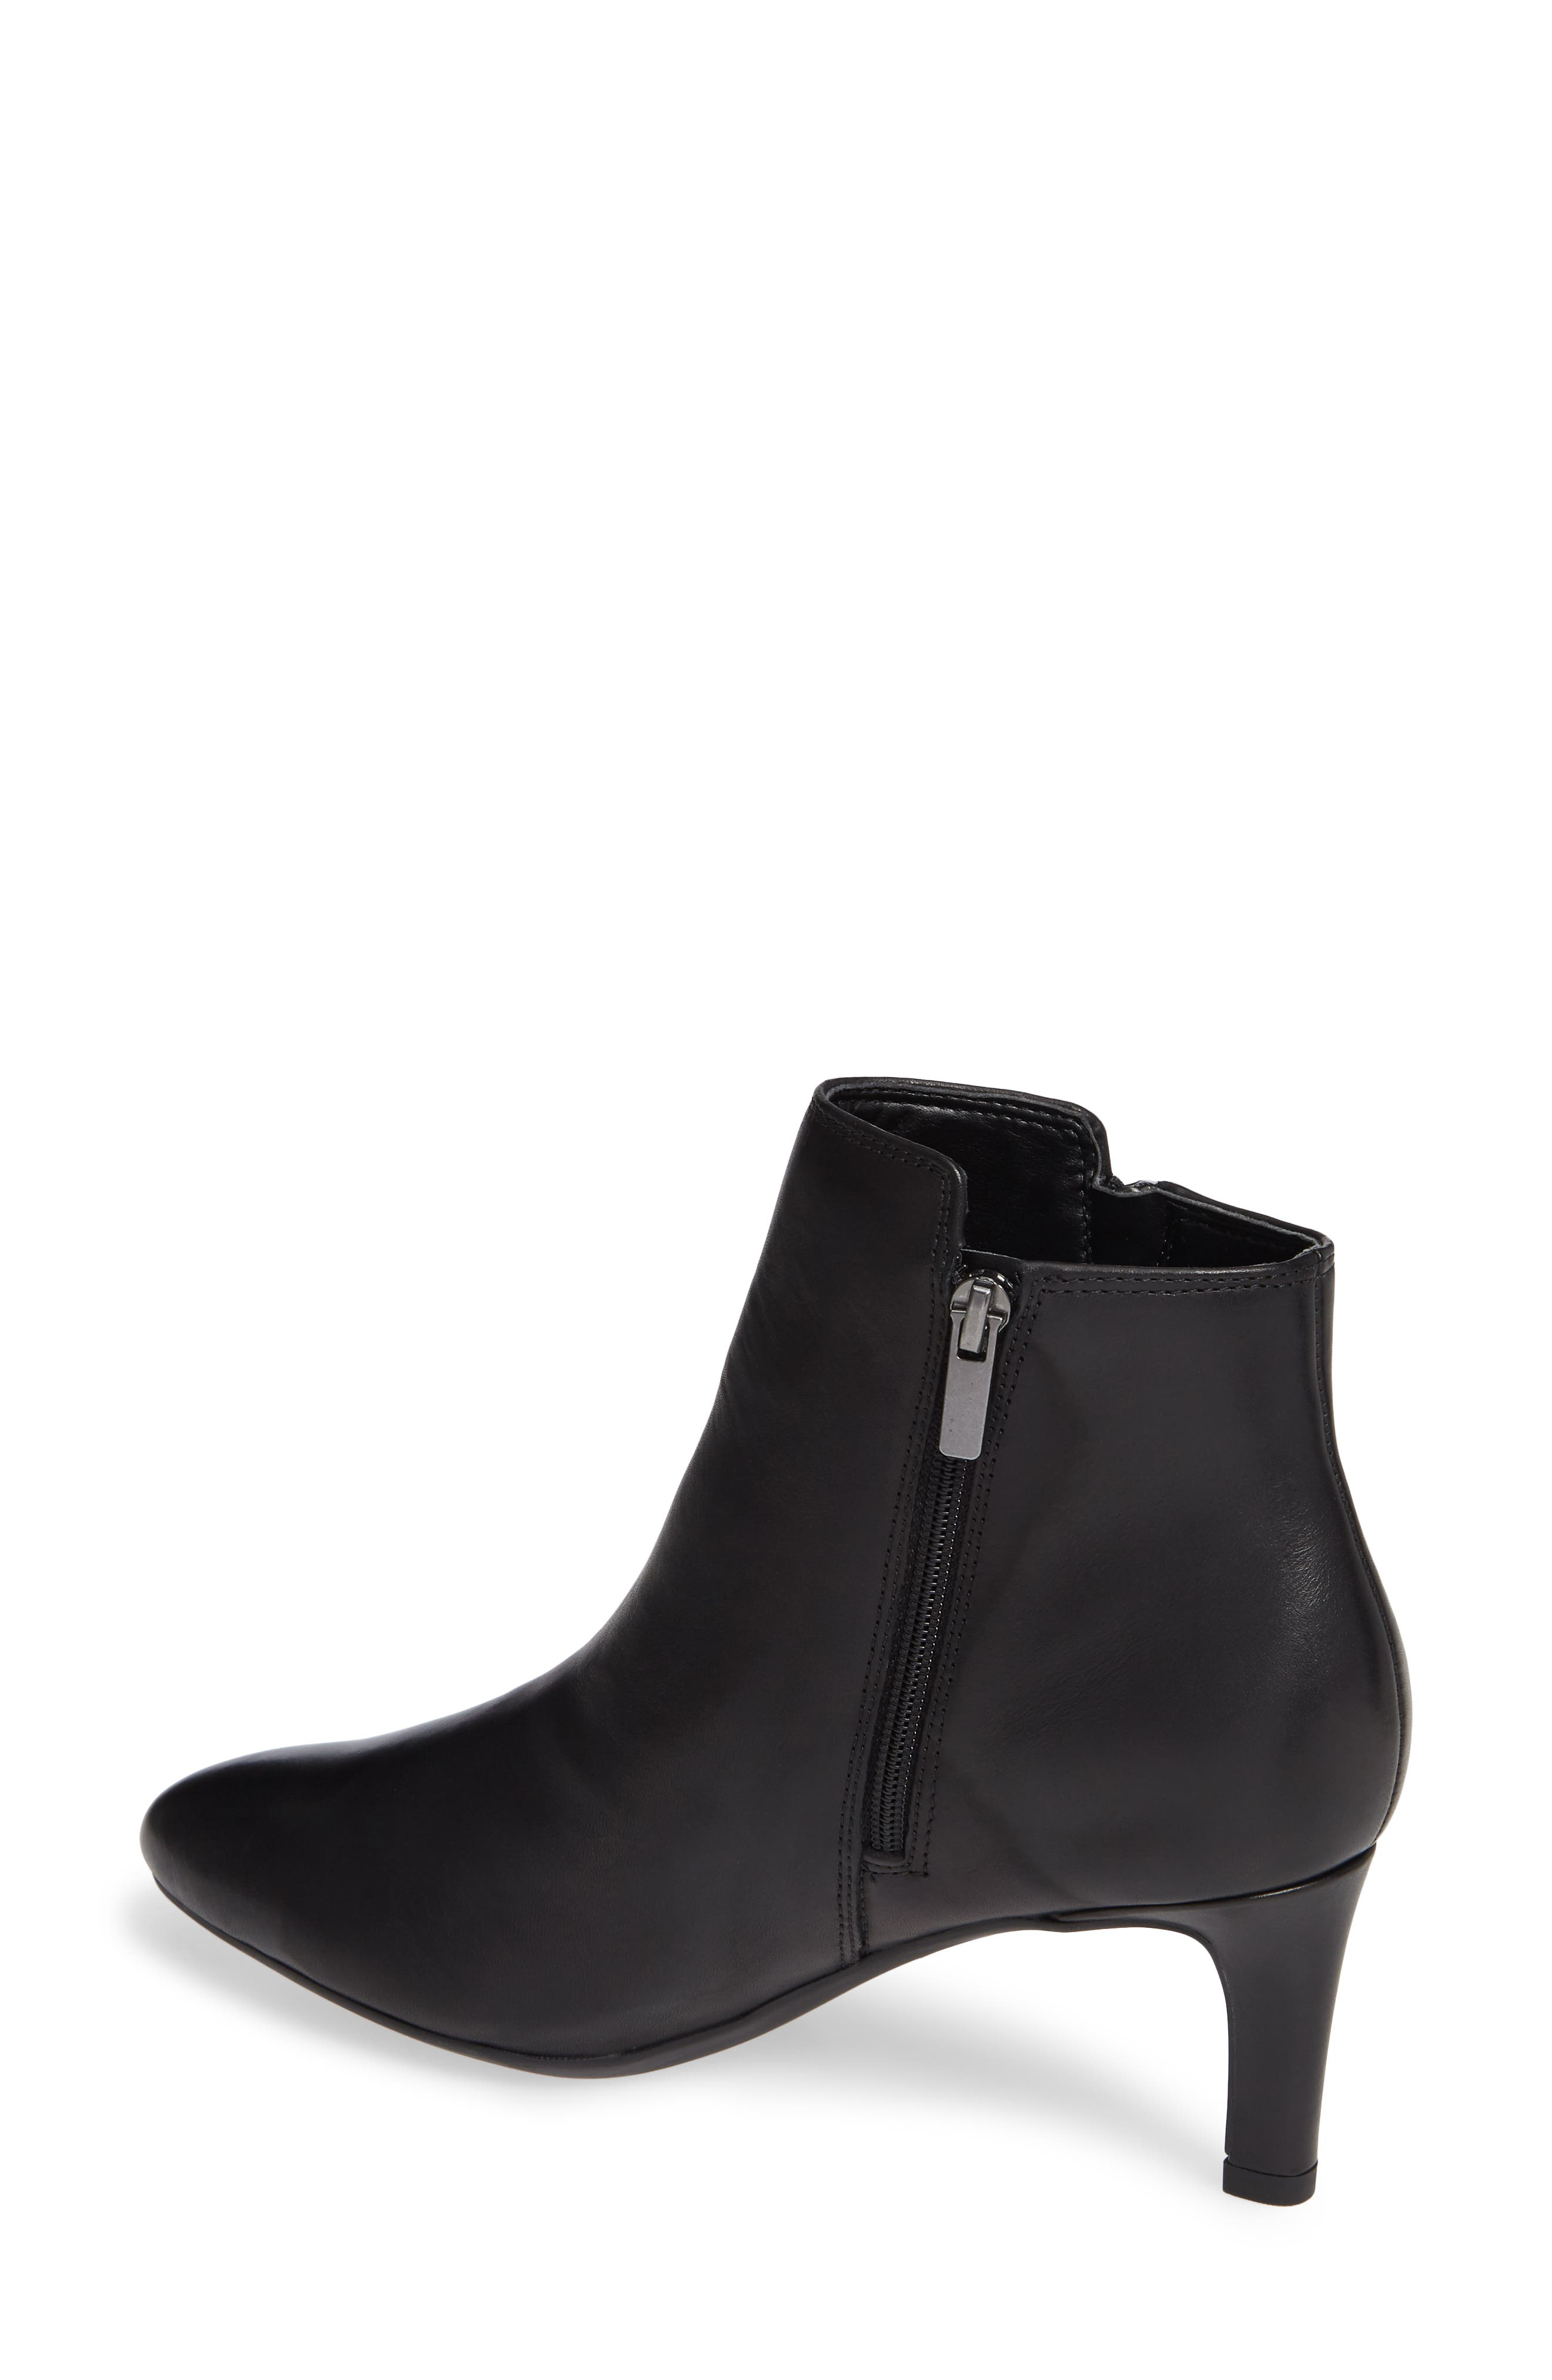 Calla Blossom Bootie,                             Alternate thumbnail 2, color,                             BLACK LEATHER